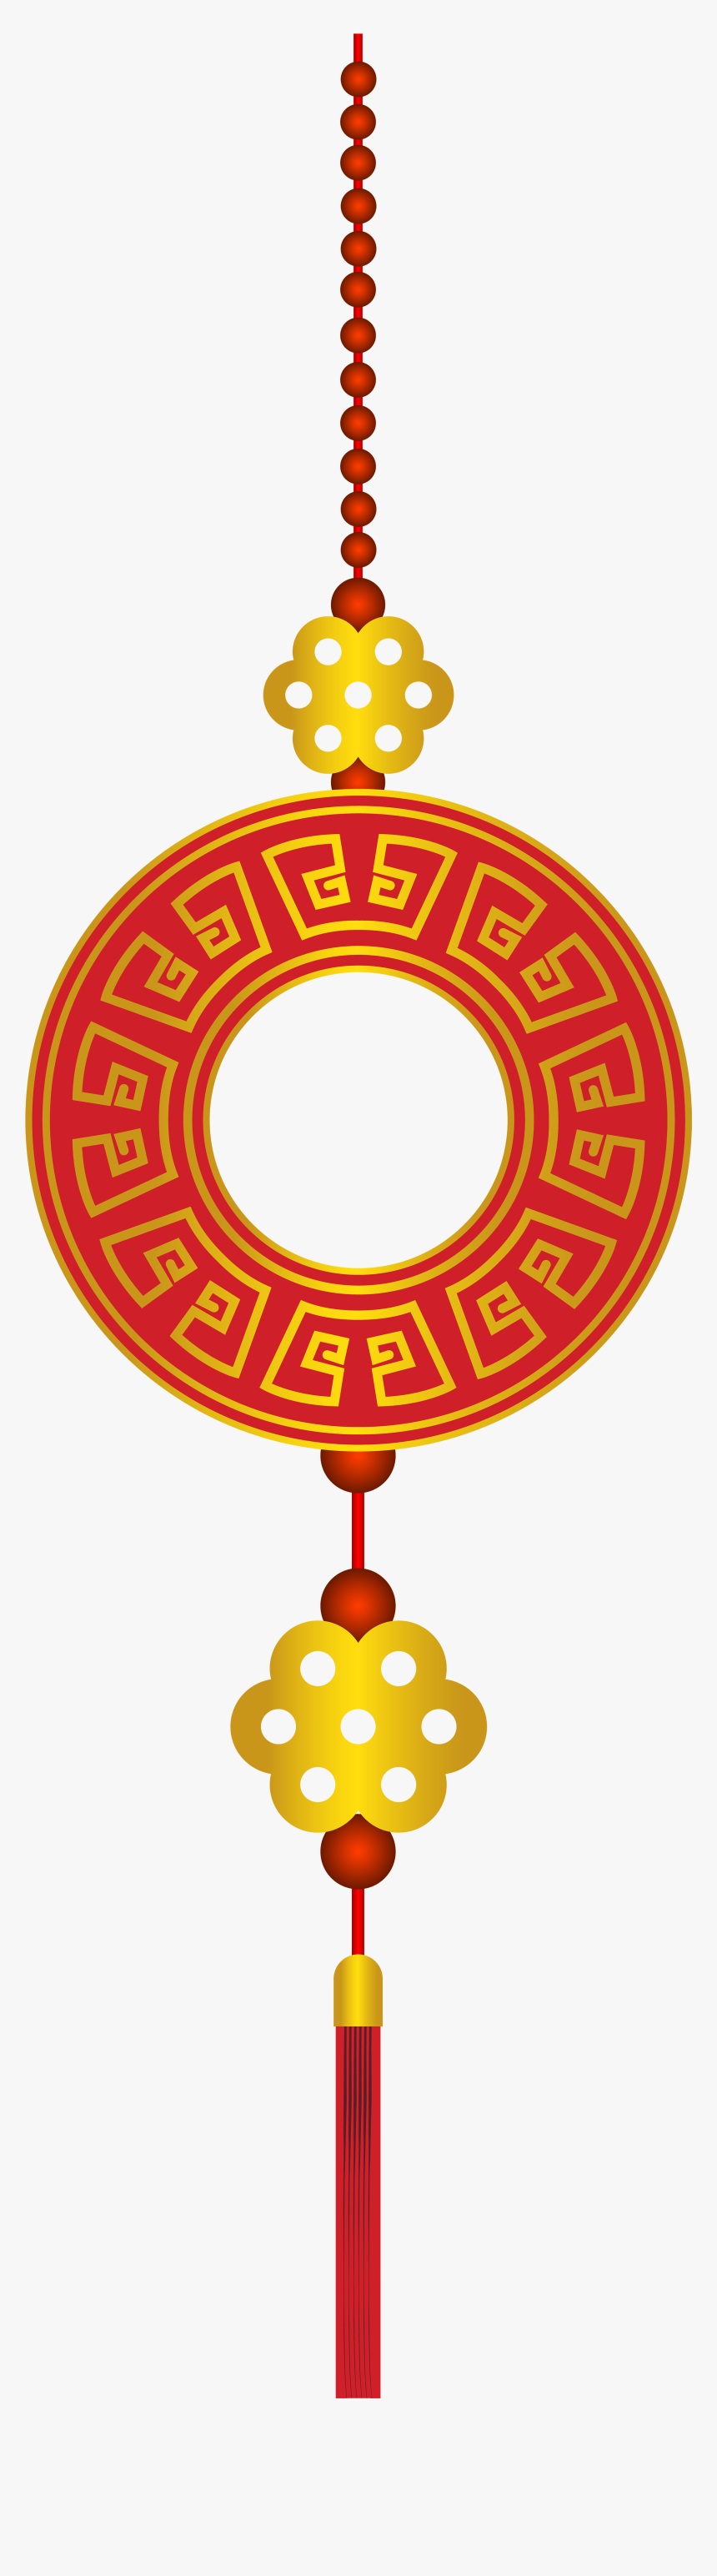 Chinese New Year Decor Png Clip Art - Chinese New Year Ornaments Png, Transparent Png, Free Download